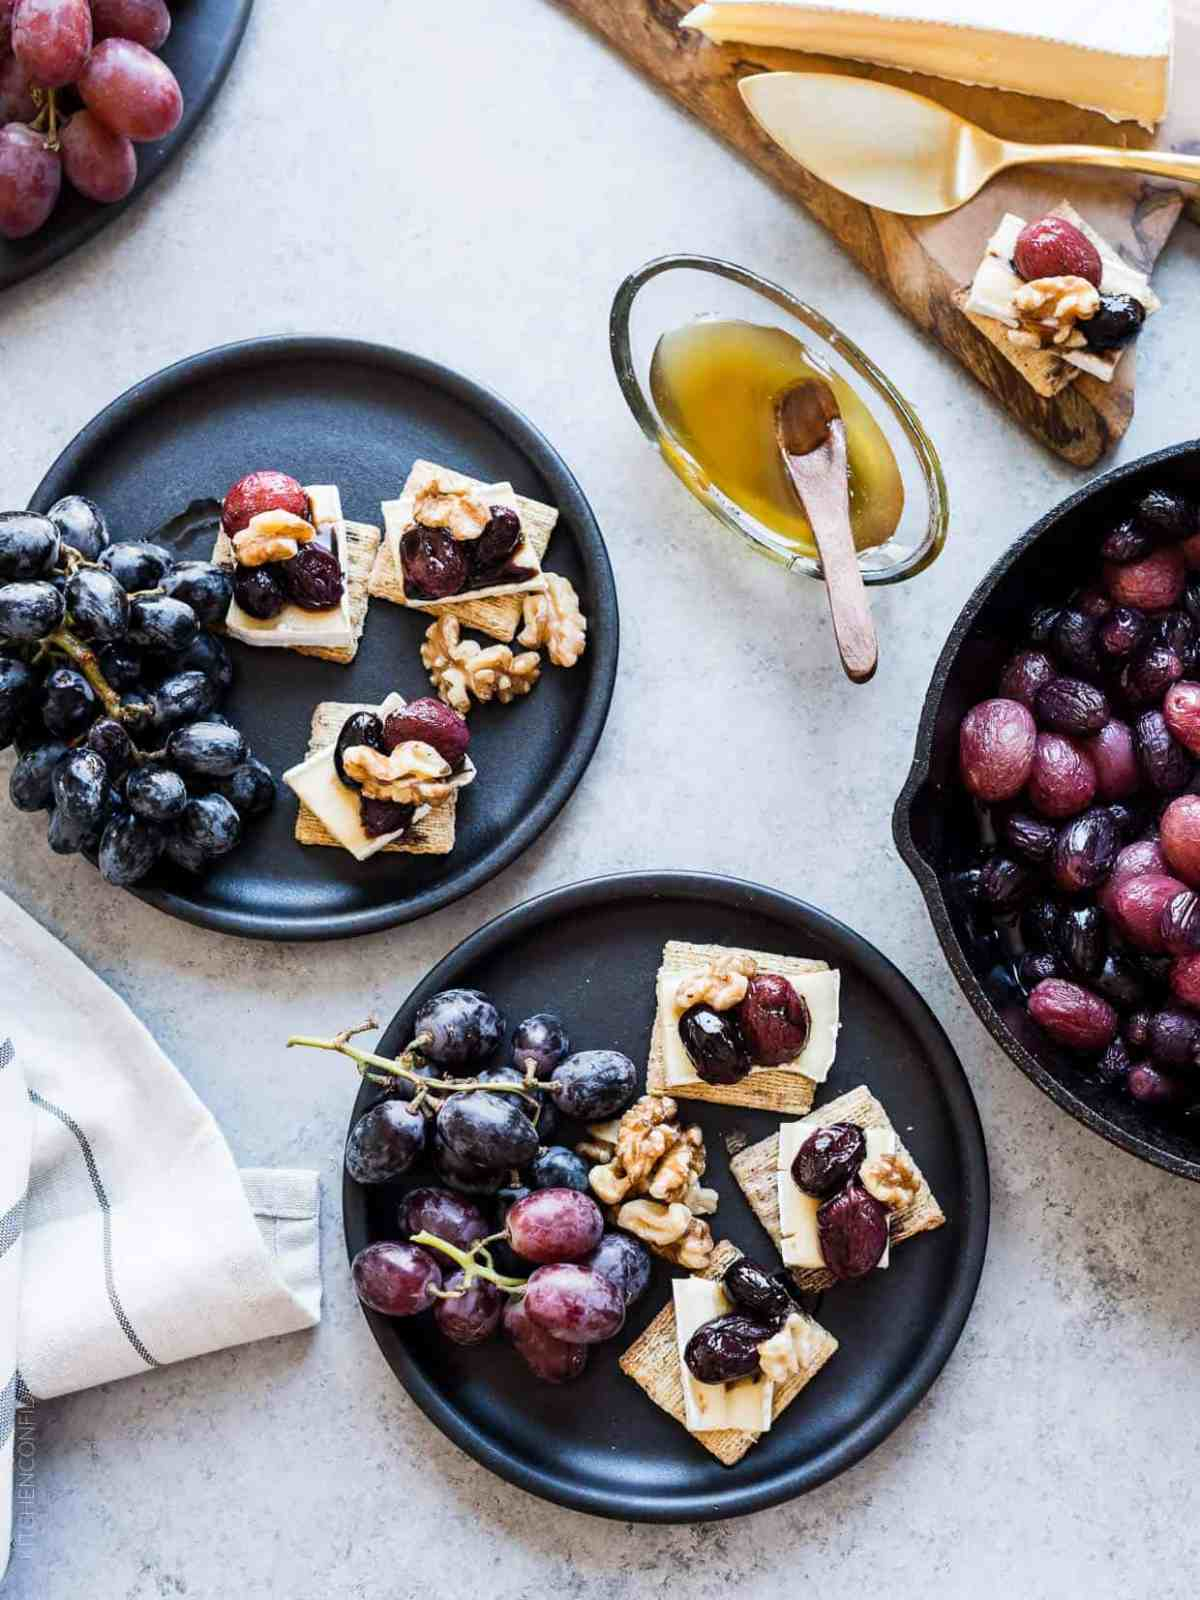 Caramelized Grape, Brie and Walnut Bites made with TRISCUIT crackers and served on dark plates with bunches of grapes.